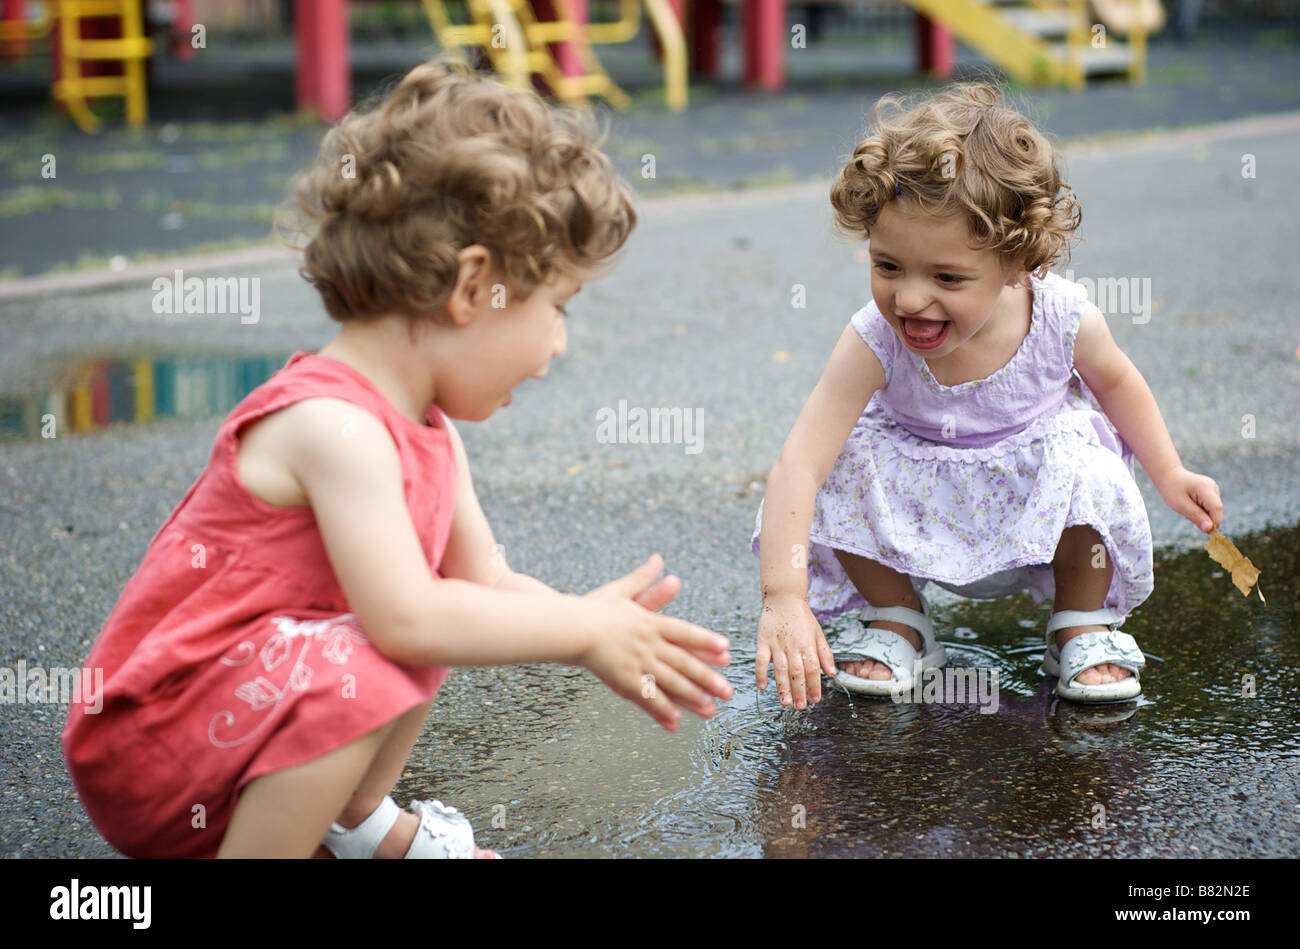 Two little girls playing in rain puddles at a playground in Brooklyn, New York, USA - Stock Image